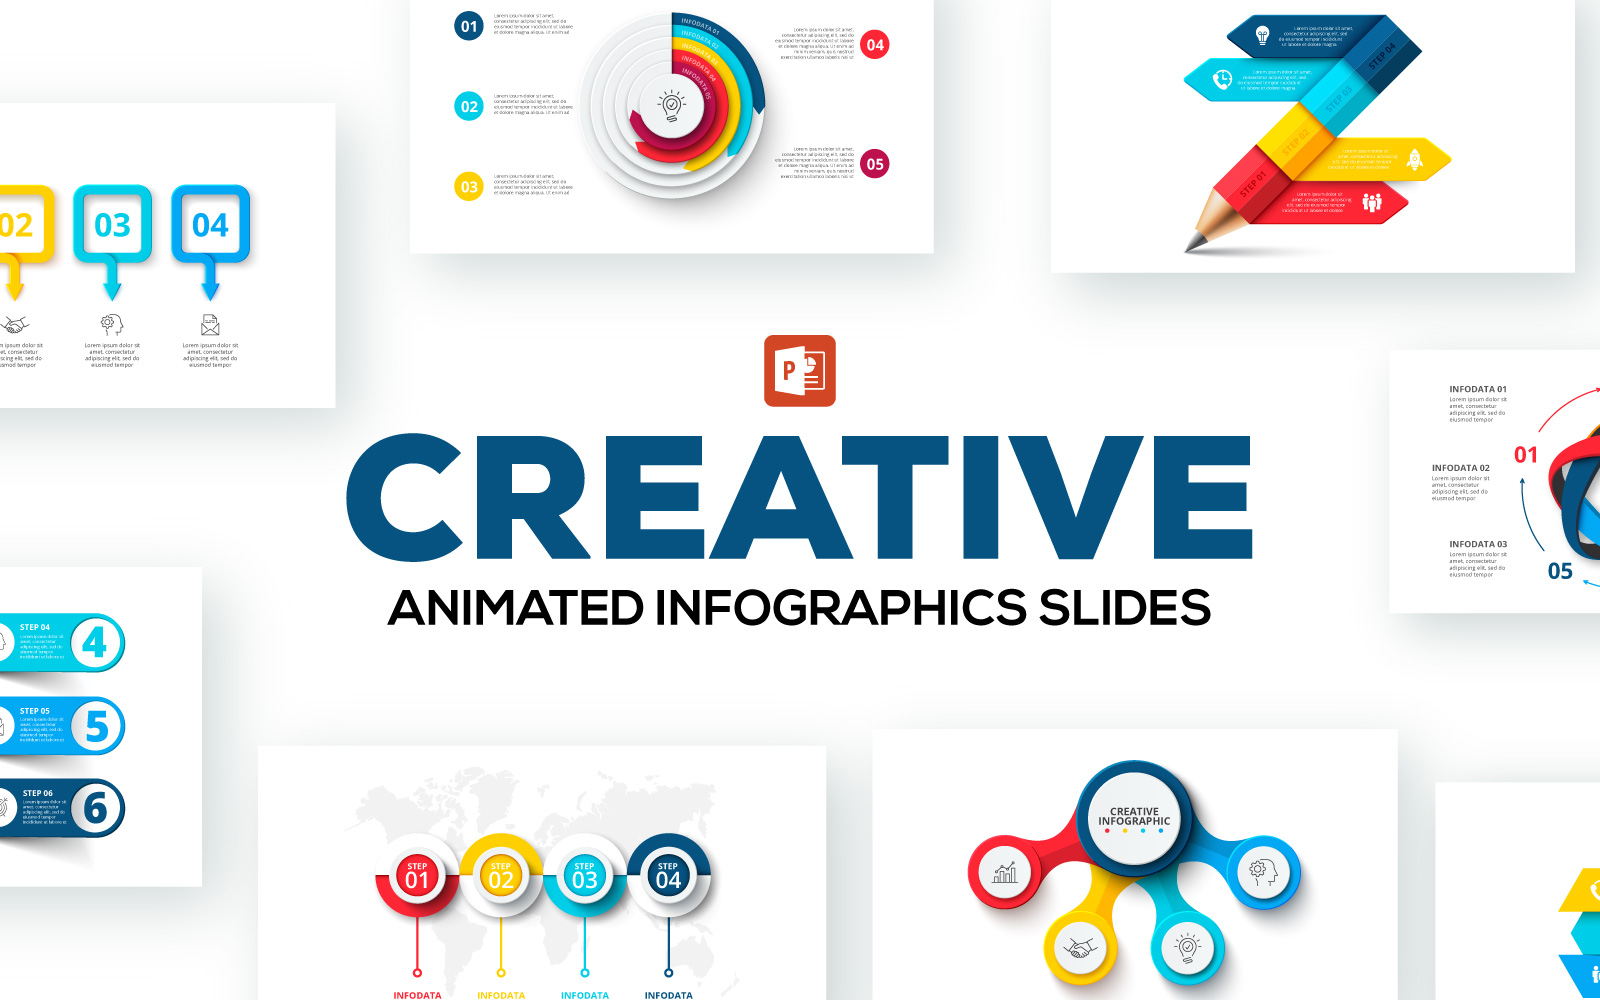 Creative Animated Infographic Presentations PowerPoint Template